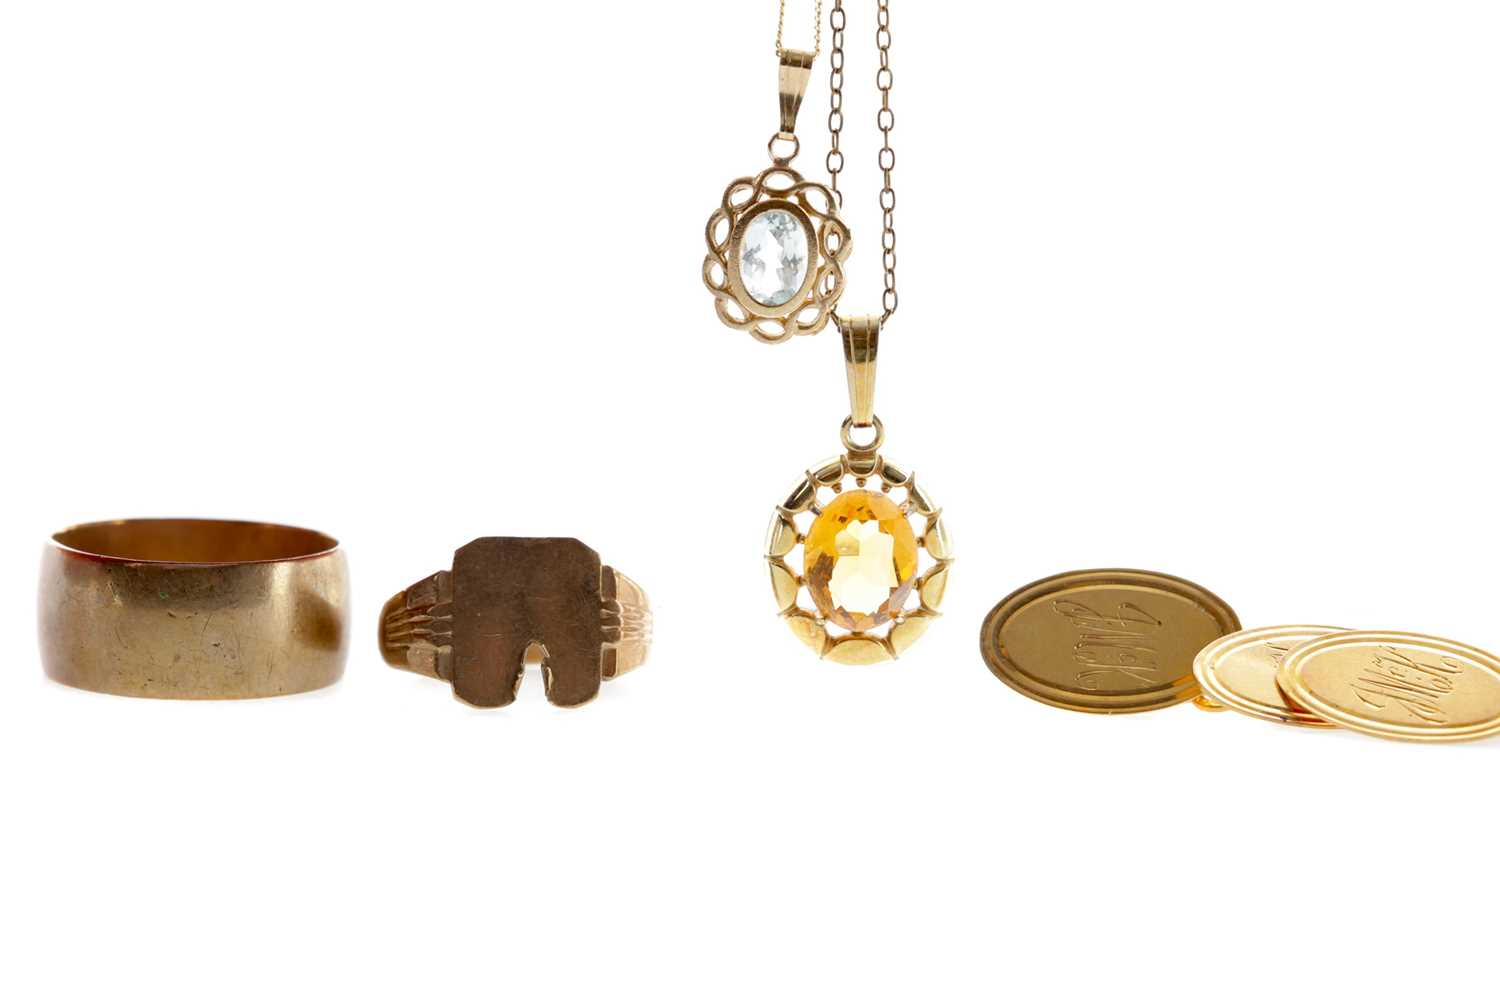 Lot 1316 - TWO GEM SET PENDANTS, PAIR OF CUFFLINKS AND TWO RINGS